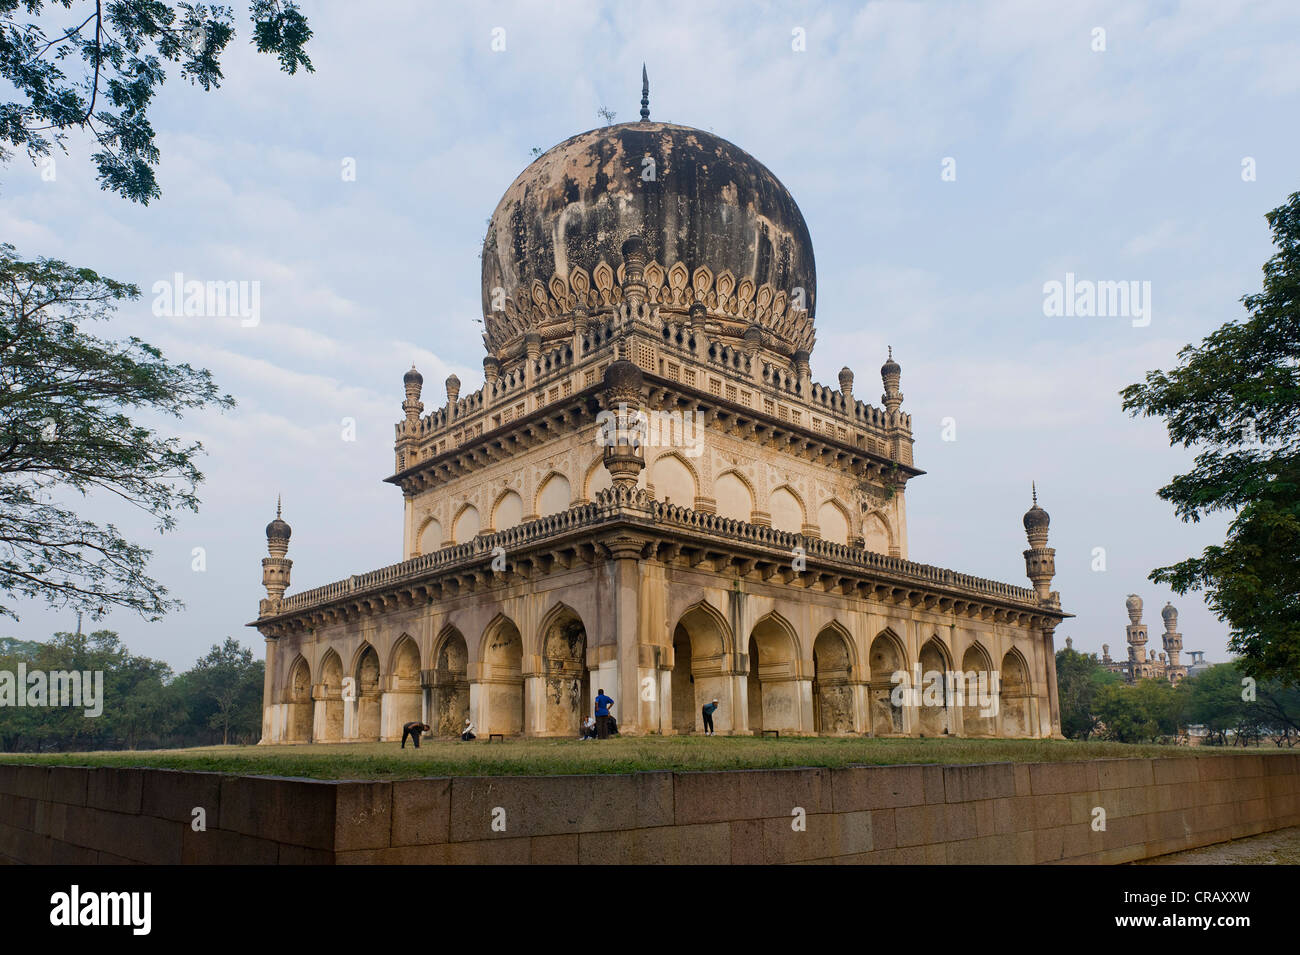 Grave monument of the Nizam of Hyderabad, Golconda, Hyderabad, Andhra Pradesh, India, Asia - Stock Image